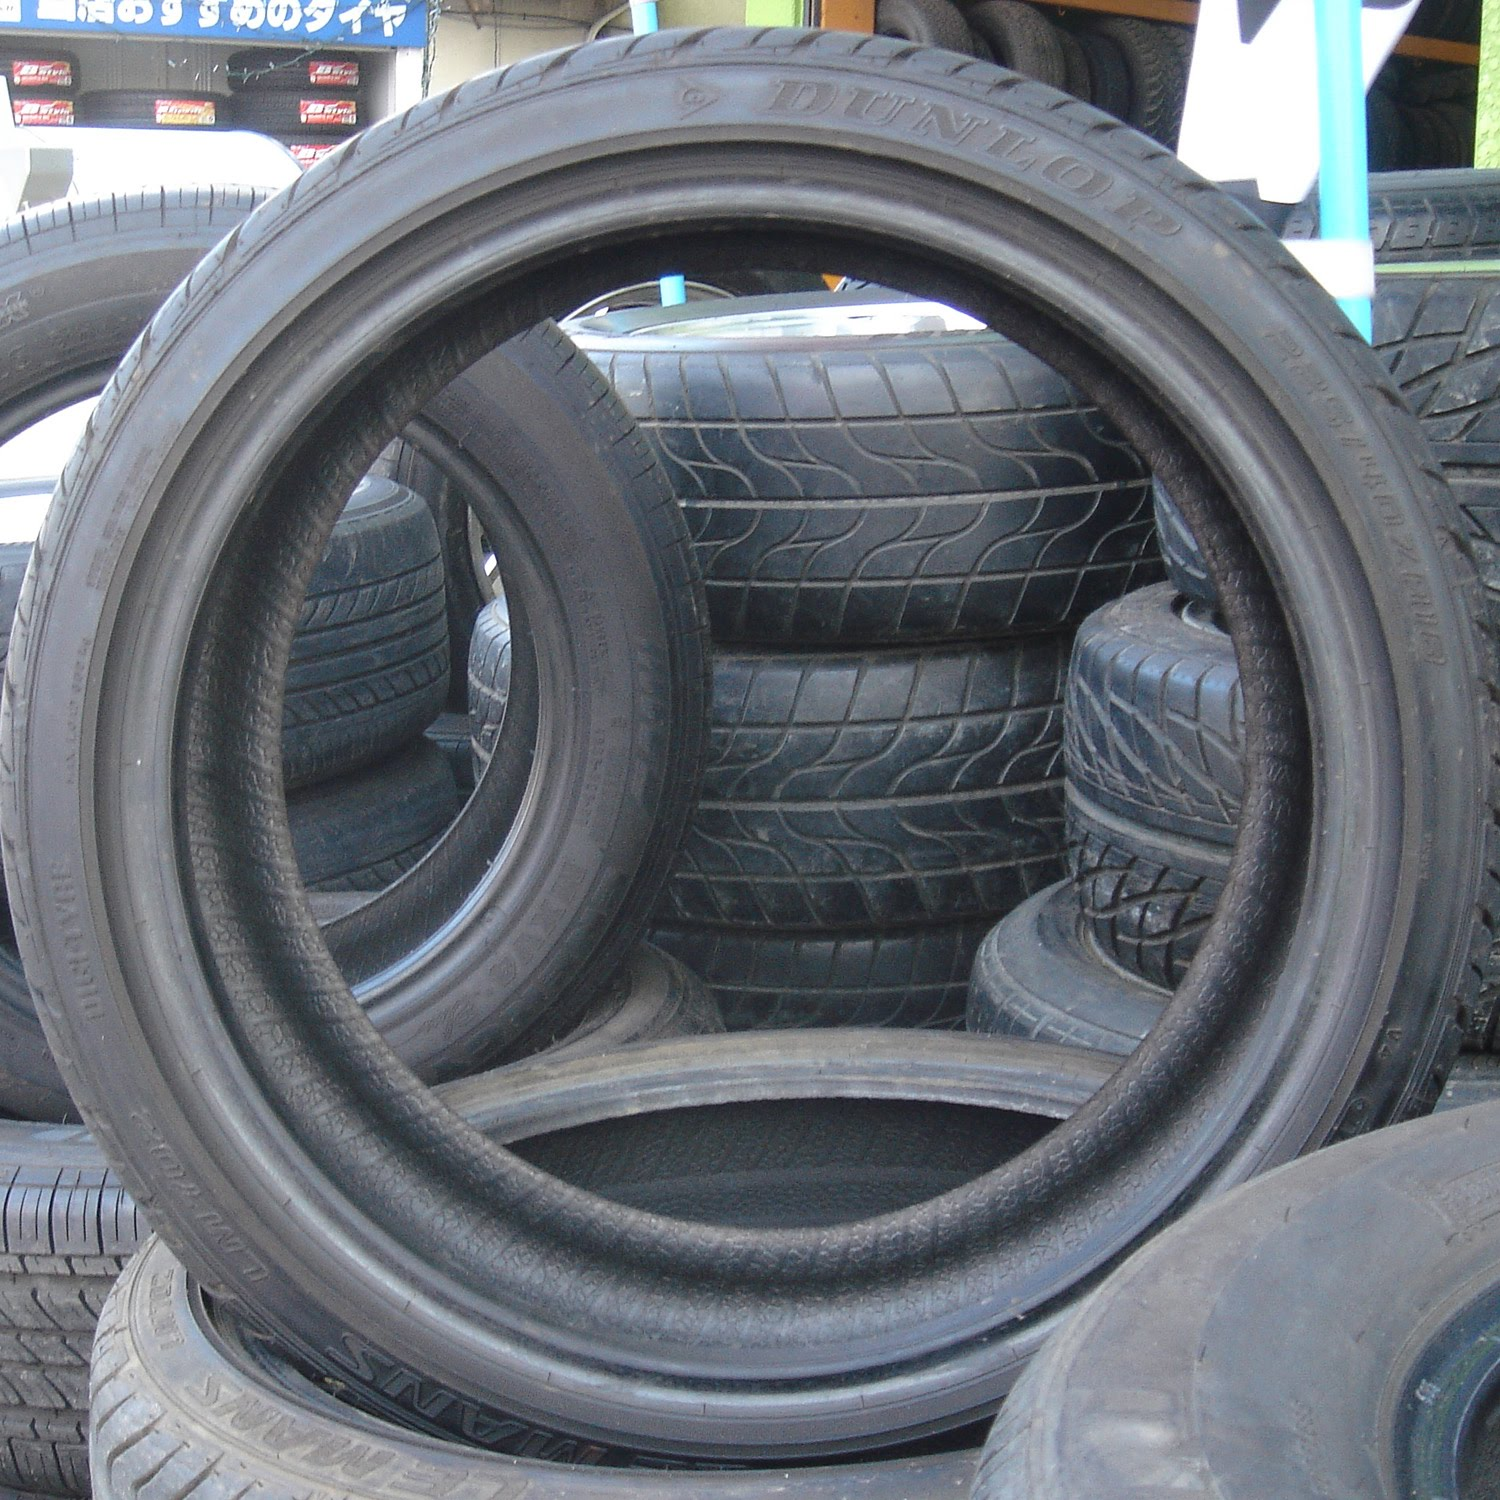 How To Buy Good Used Tires For Any Vehicle